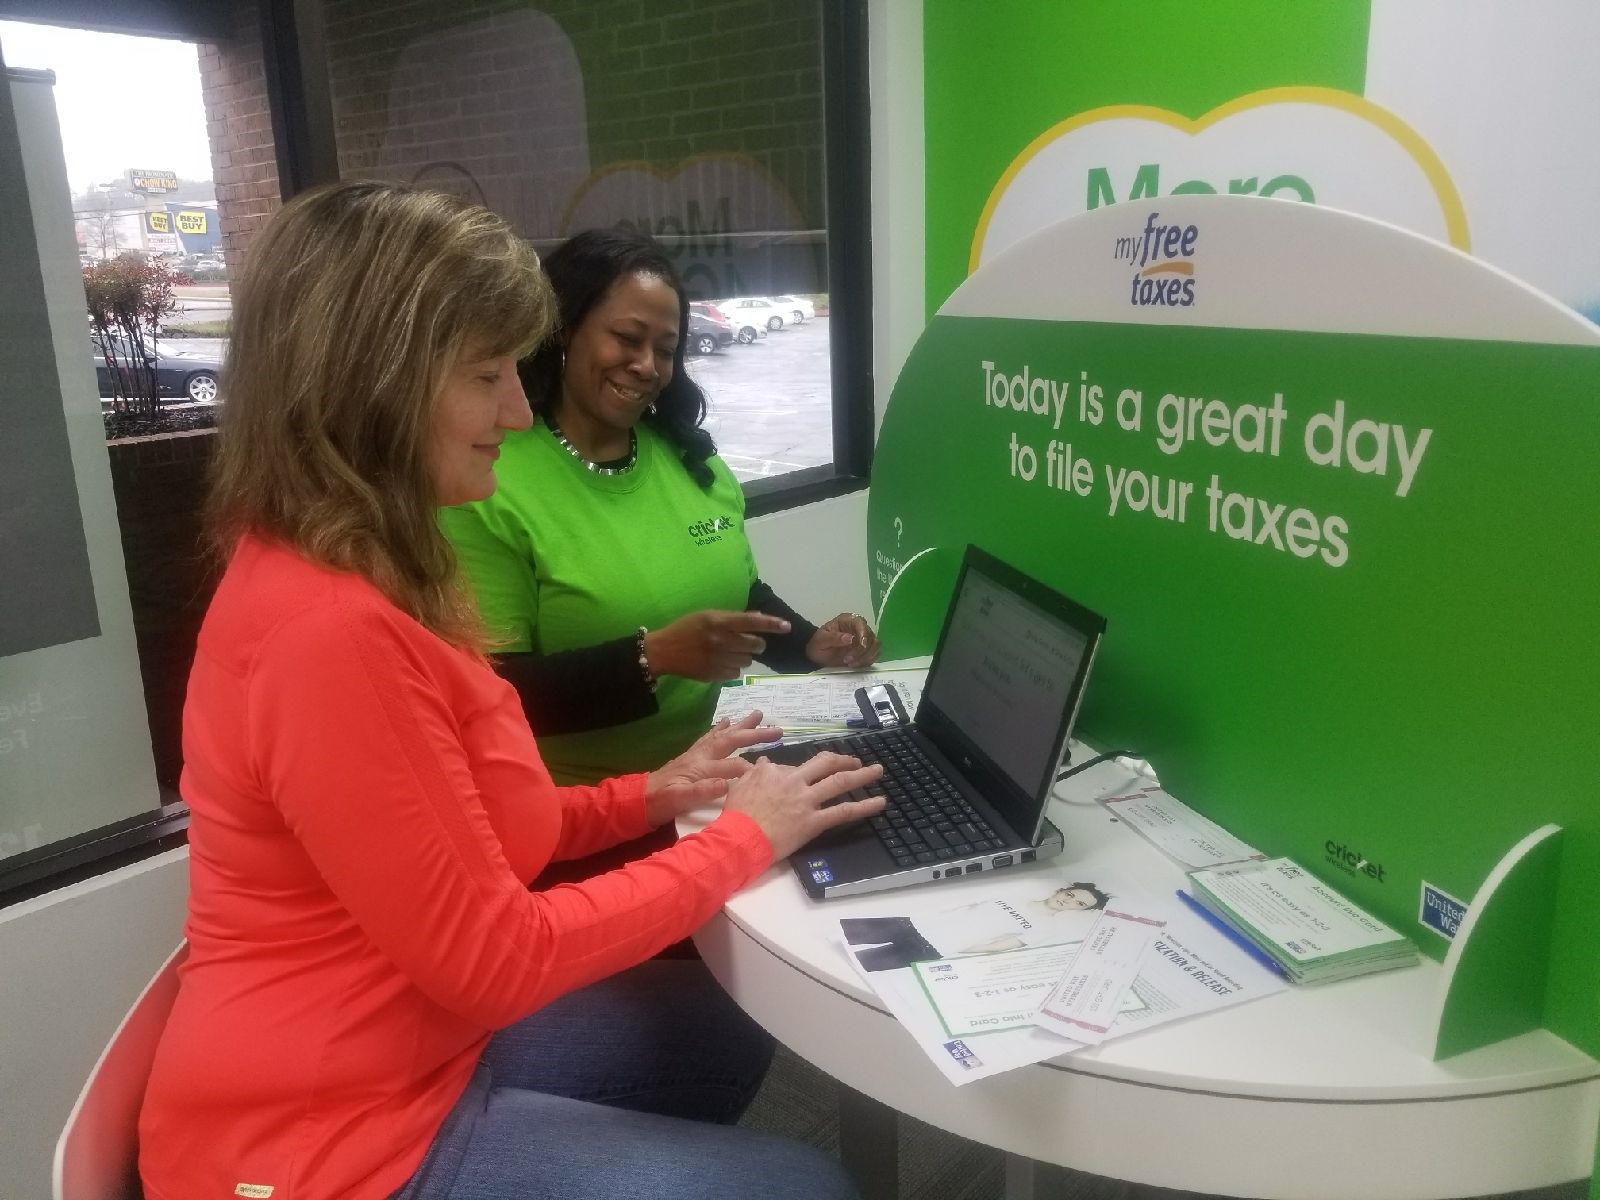 United Way Worldwide and Cricket Wireless are partnering to offer FREE tax filing assistance via MyFreeTaxes.com at select Cricket stores.